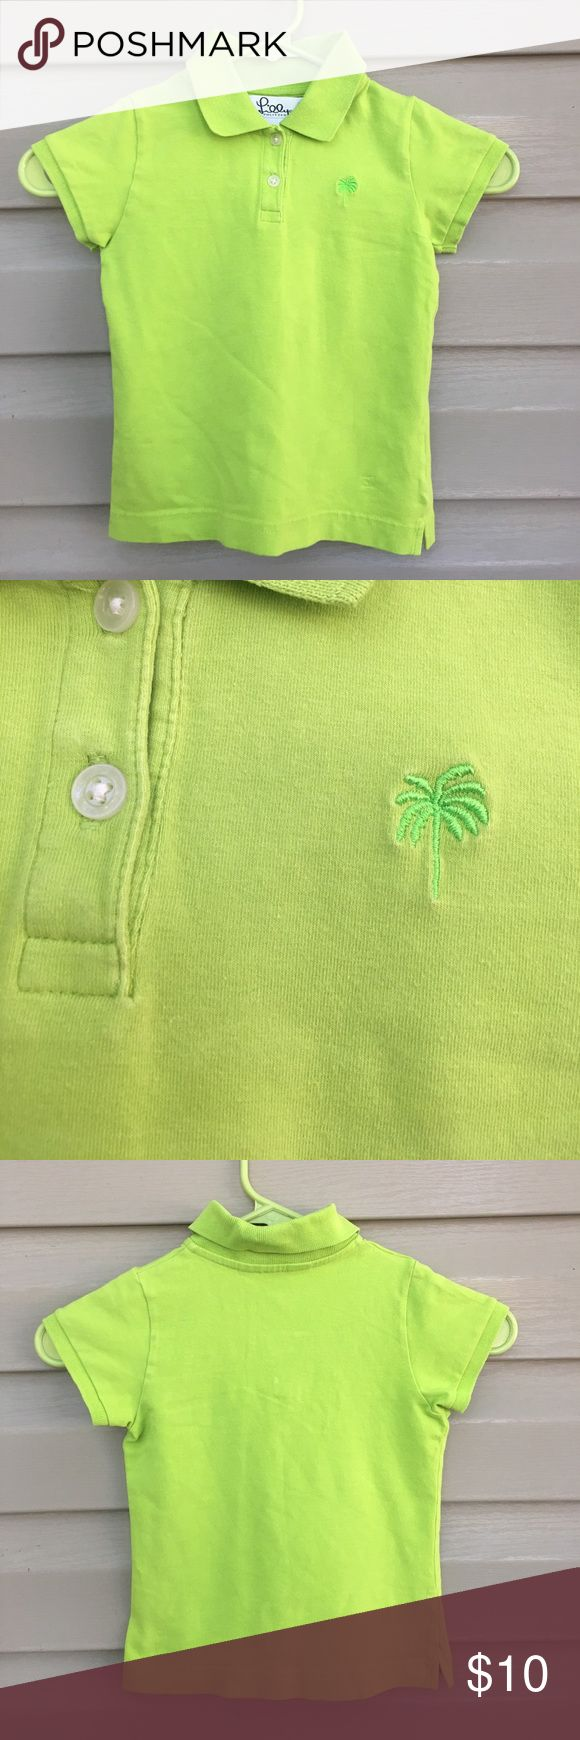 Lilly Pulitzer girls lime green polo shirt Cute 2 button polo with palm tree on front. No snags, stains or holes. 100% cotton Lilly Pulitzer Shirts & Tops Polos